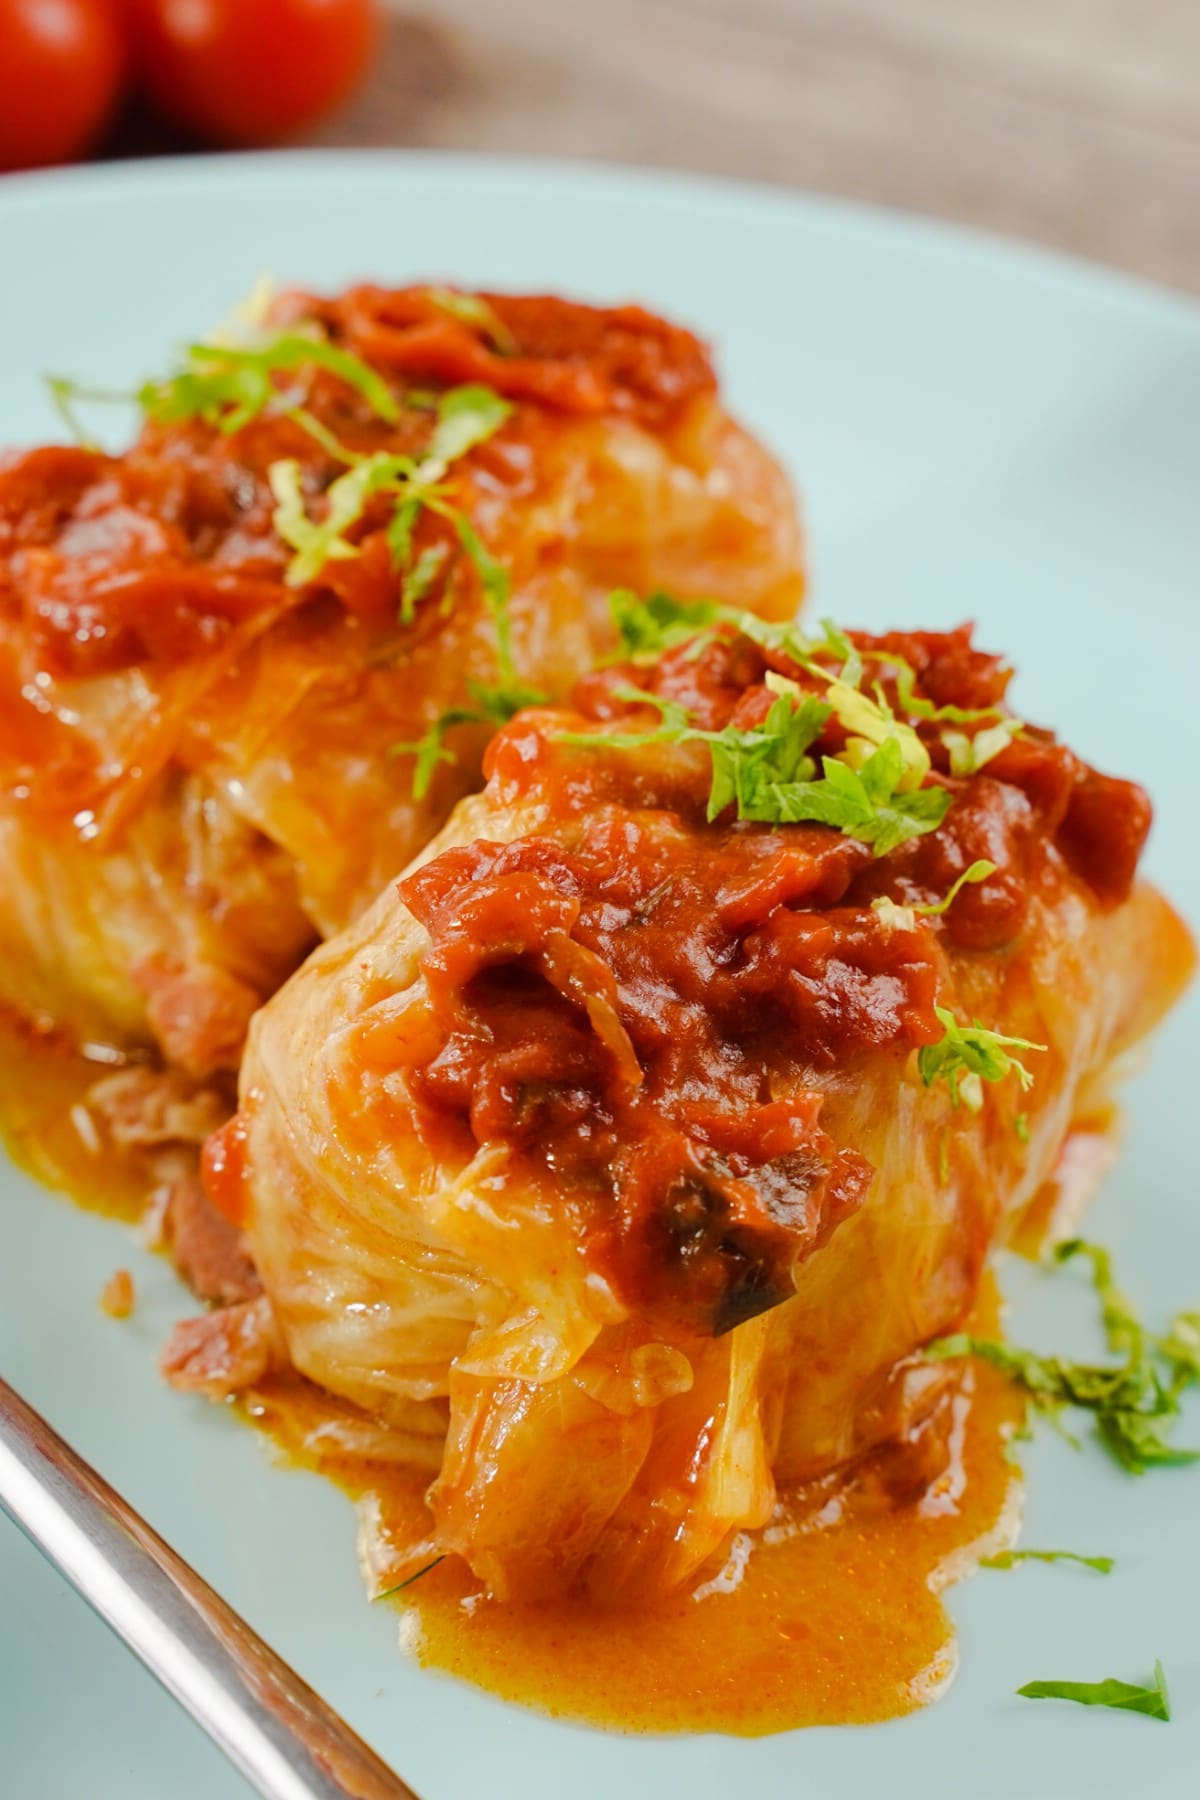 Close up image of white plate of stuffed cabbage with red sauce on top